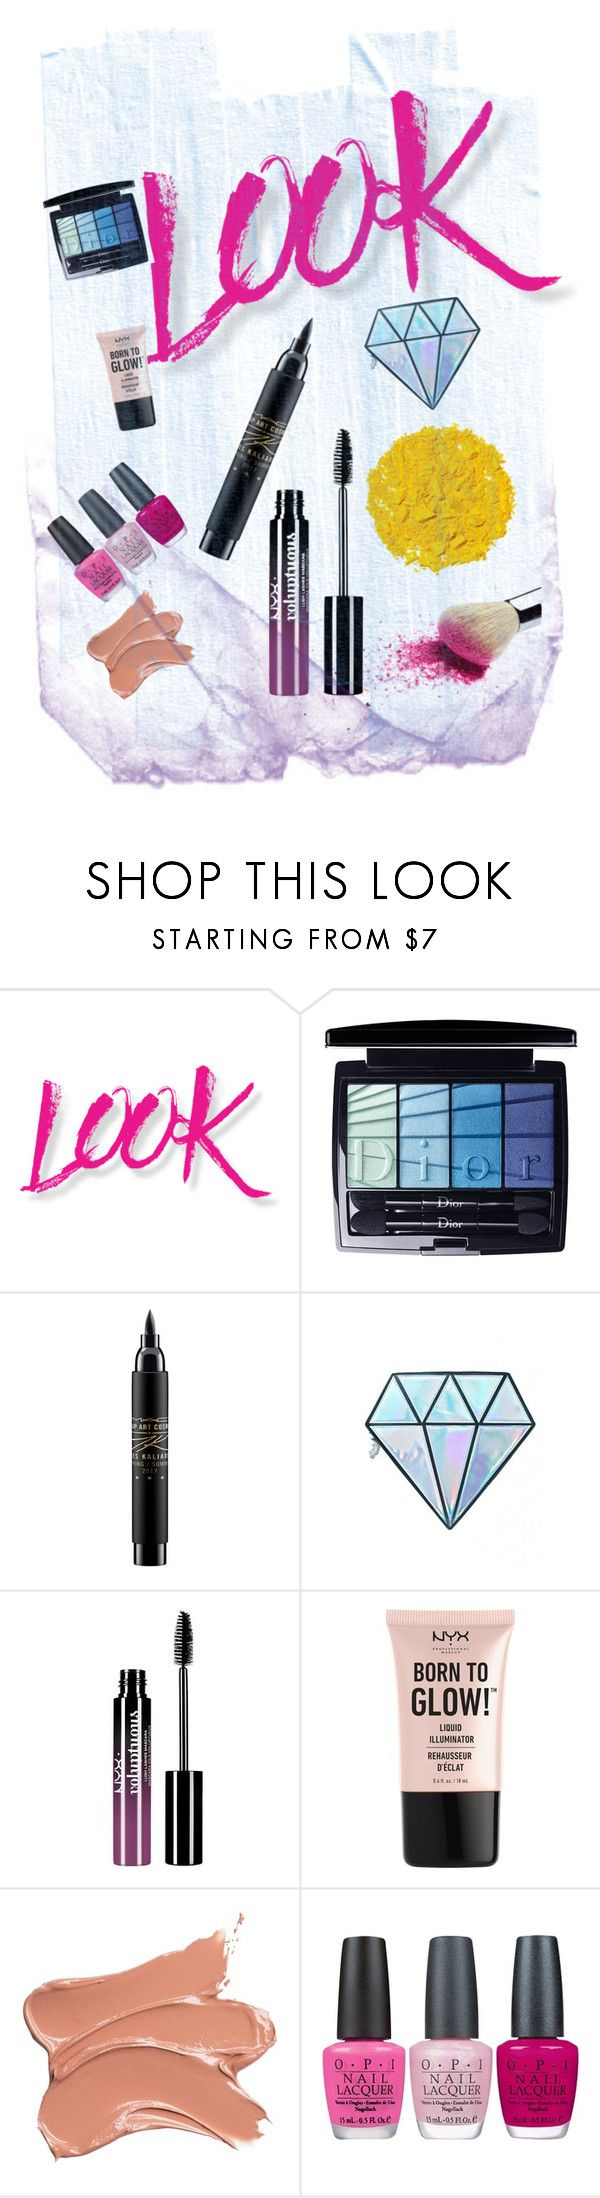 Untitled #157 by vendys on Polyvore featuring beauty, Unicorn Lashes, Christian Dior, Illamasqua, NYX, MAC Cosmetics, Charlotte Russe and OPI